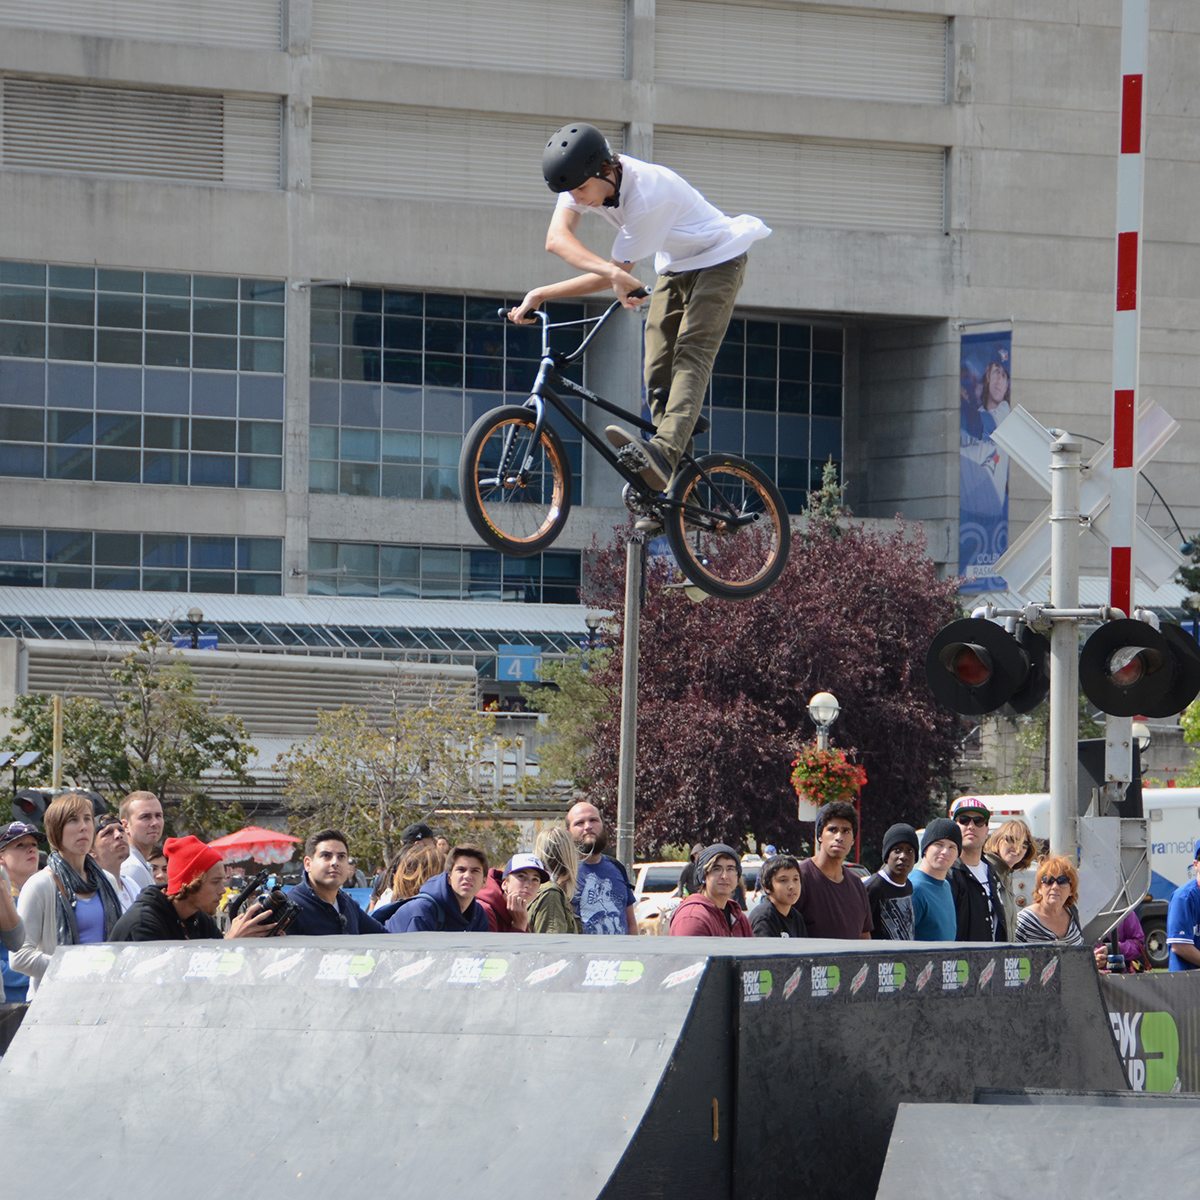 Matt Weatherall Cross-up at BMX Dew Tour Am Series in Toronto